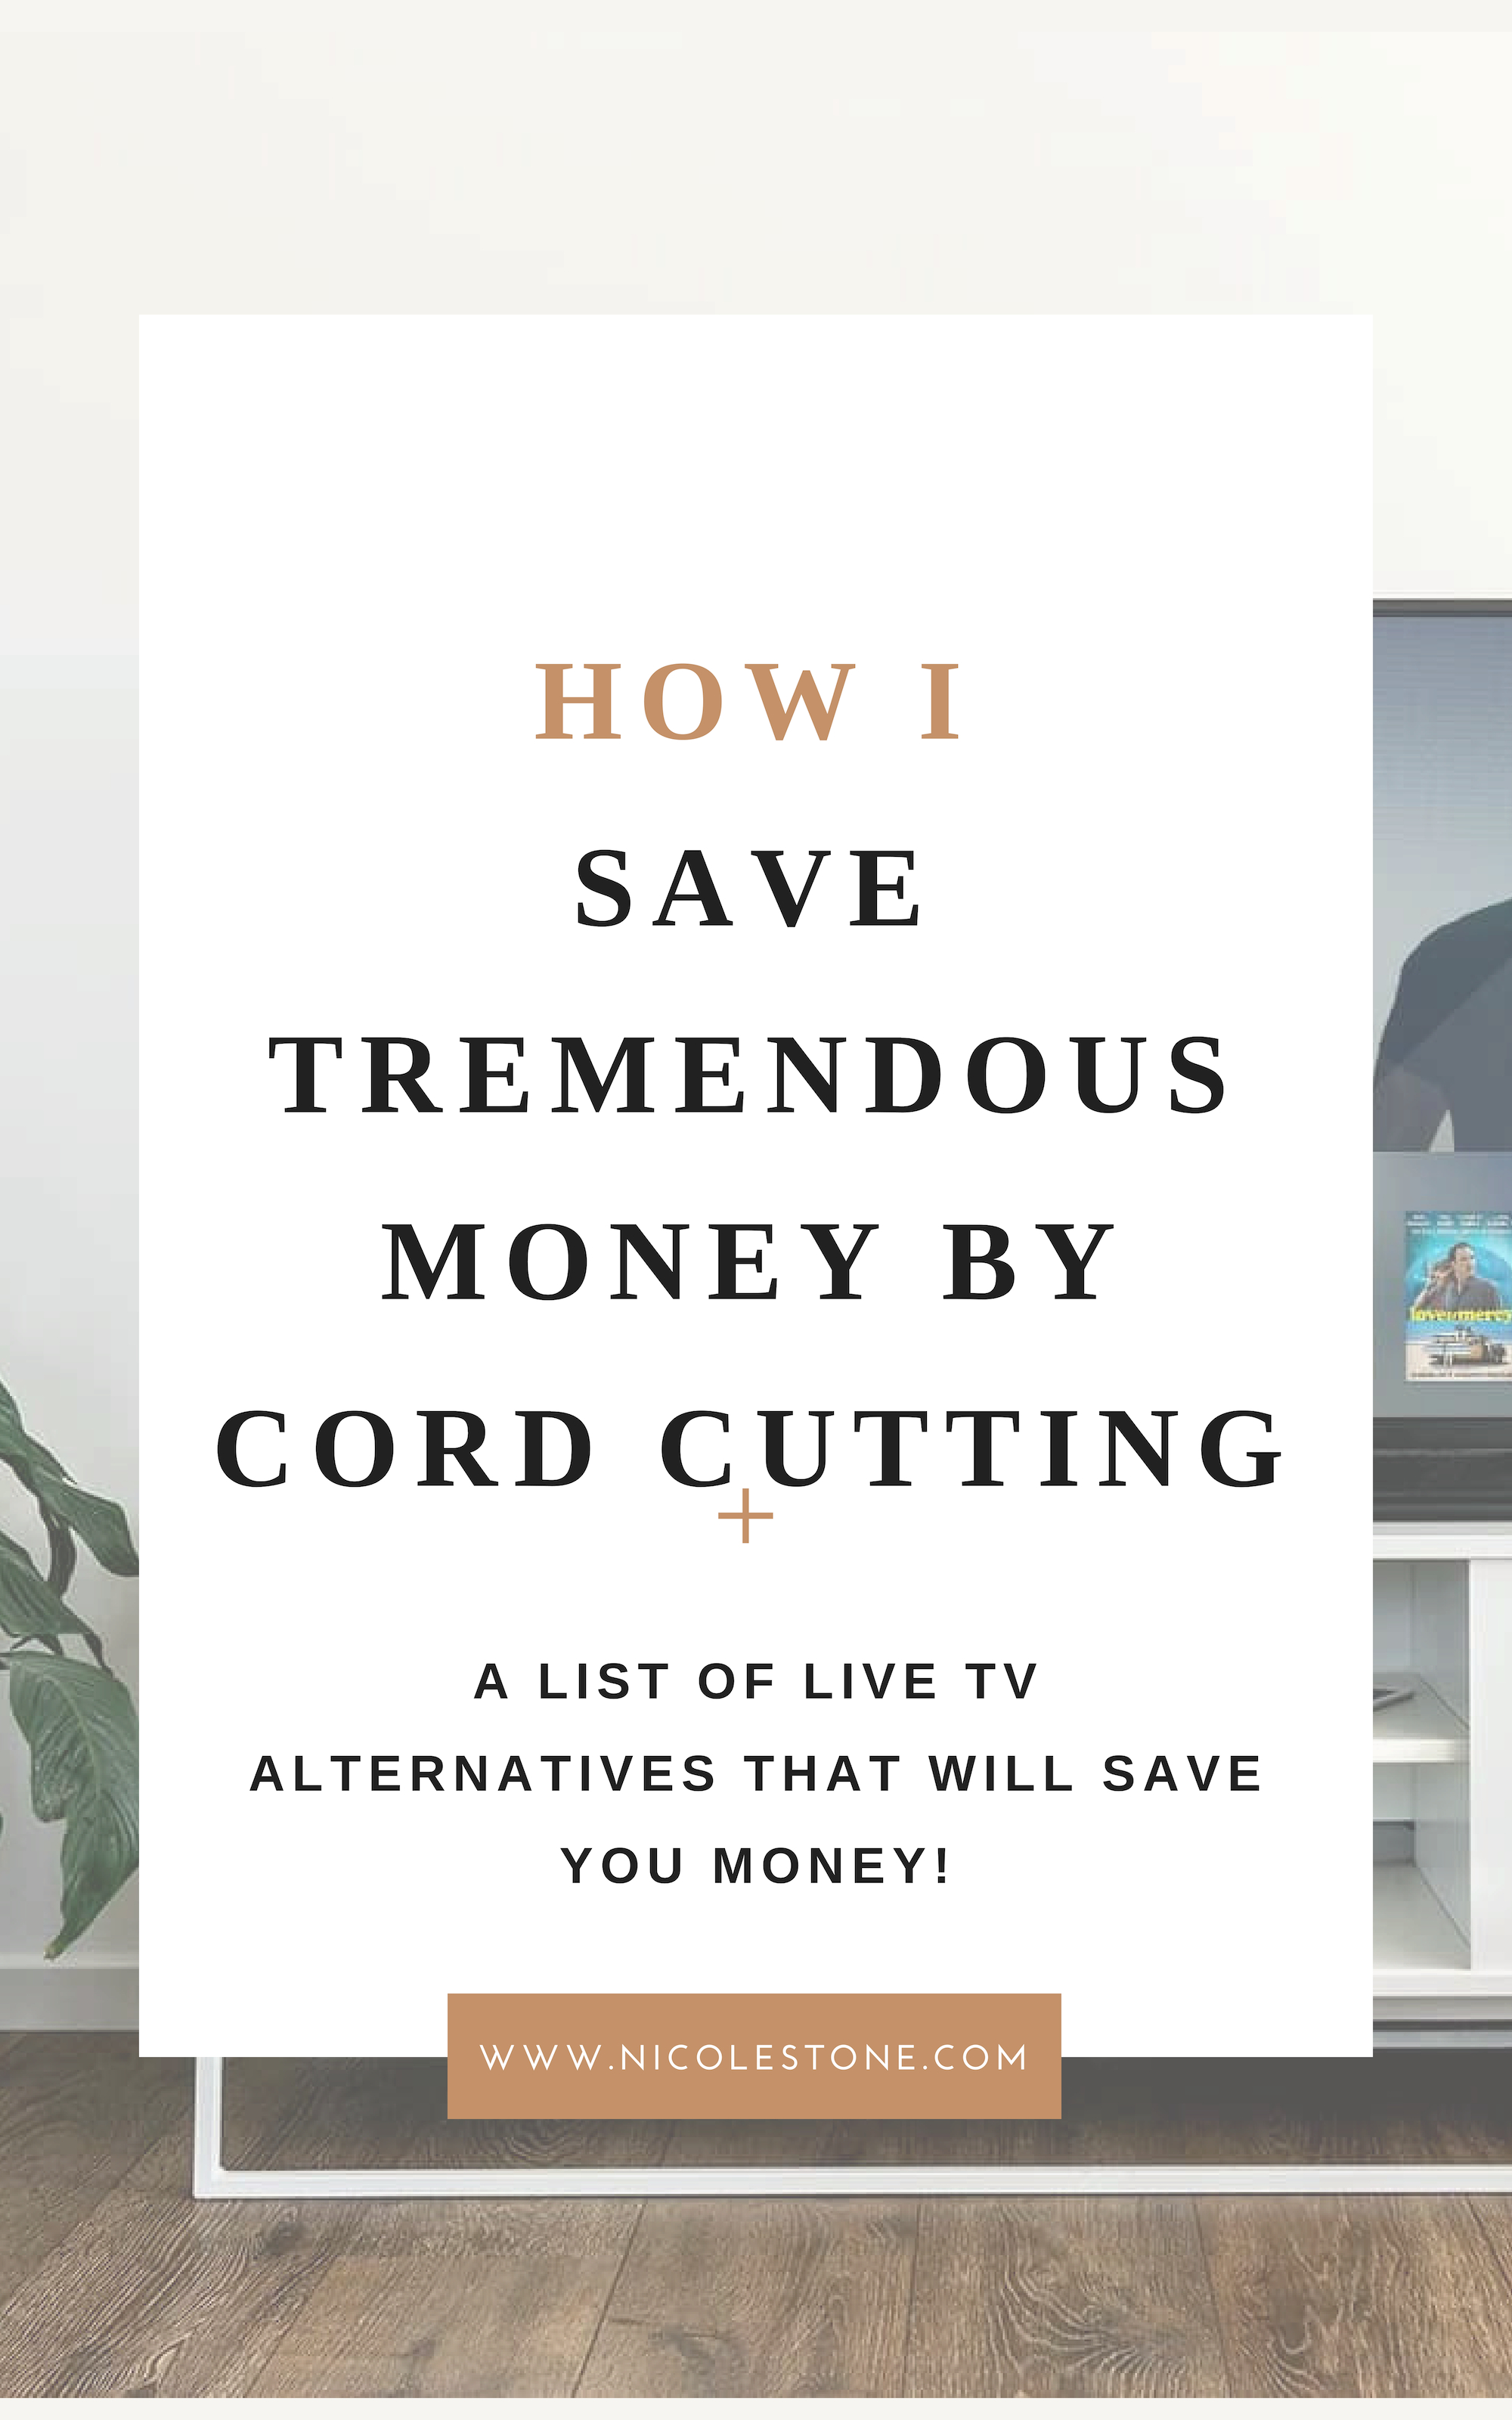 This is how I save tremendous money by cutting the cord! #savemoney #finances #financetips